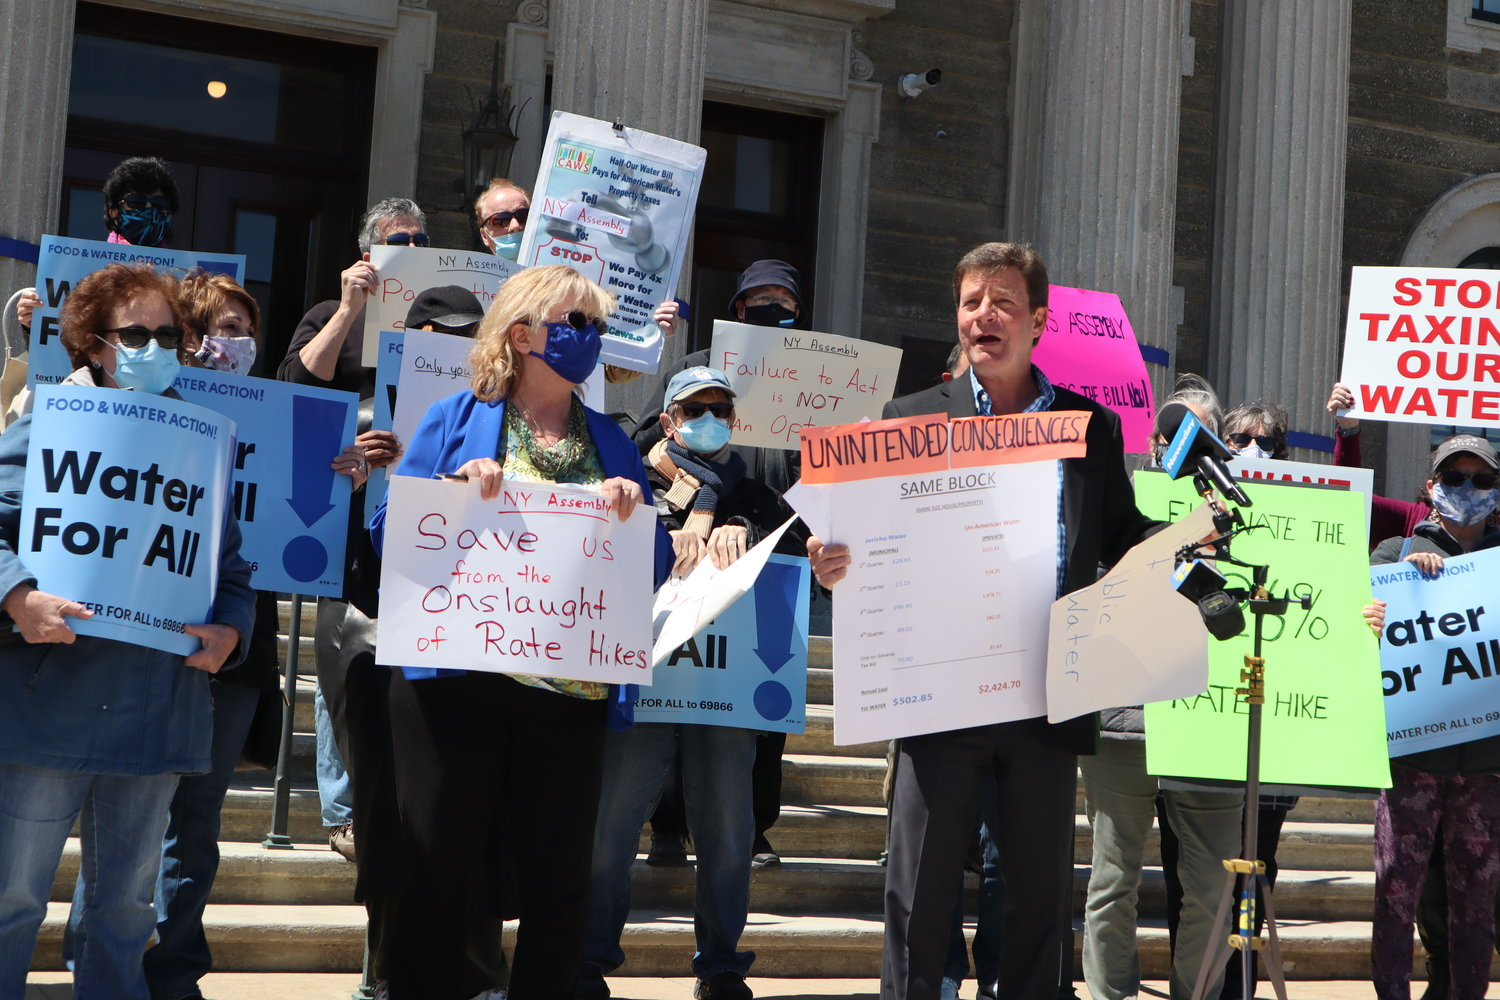 Claudia Borecky and David Denenberg, co-directors of the Merrick-based advocacy group Long Island Clean Air, Water and Soil, joined other advocates to call for companion 